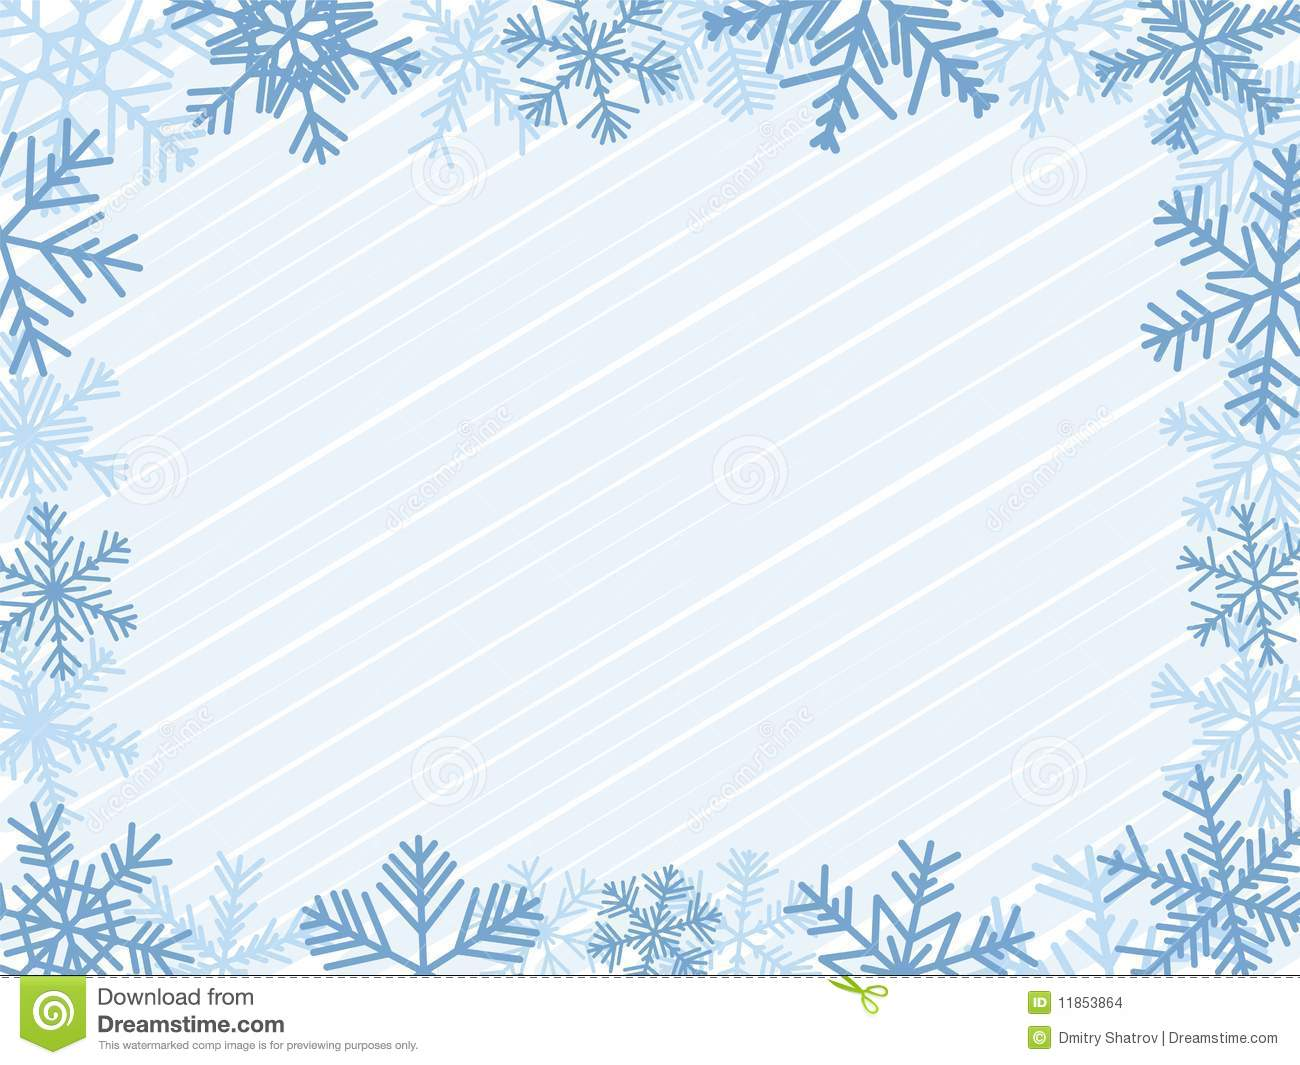 Light-Blue Winter Frame With Different Snowflakes.